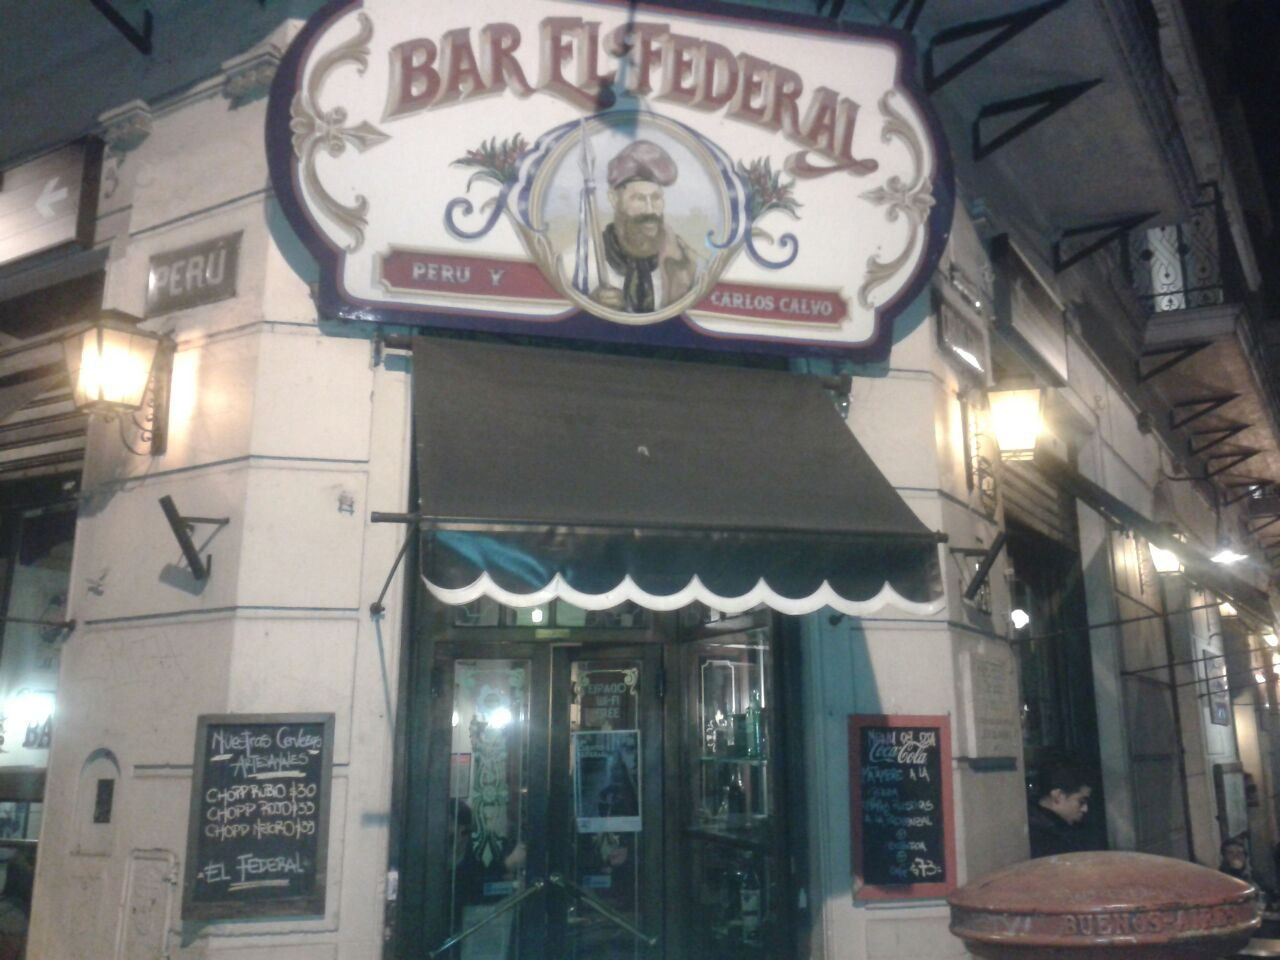 8dbf75d849245 Bar El Federal - Antigourmet